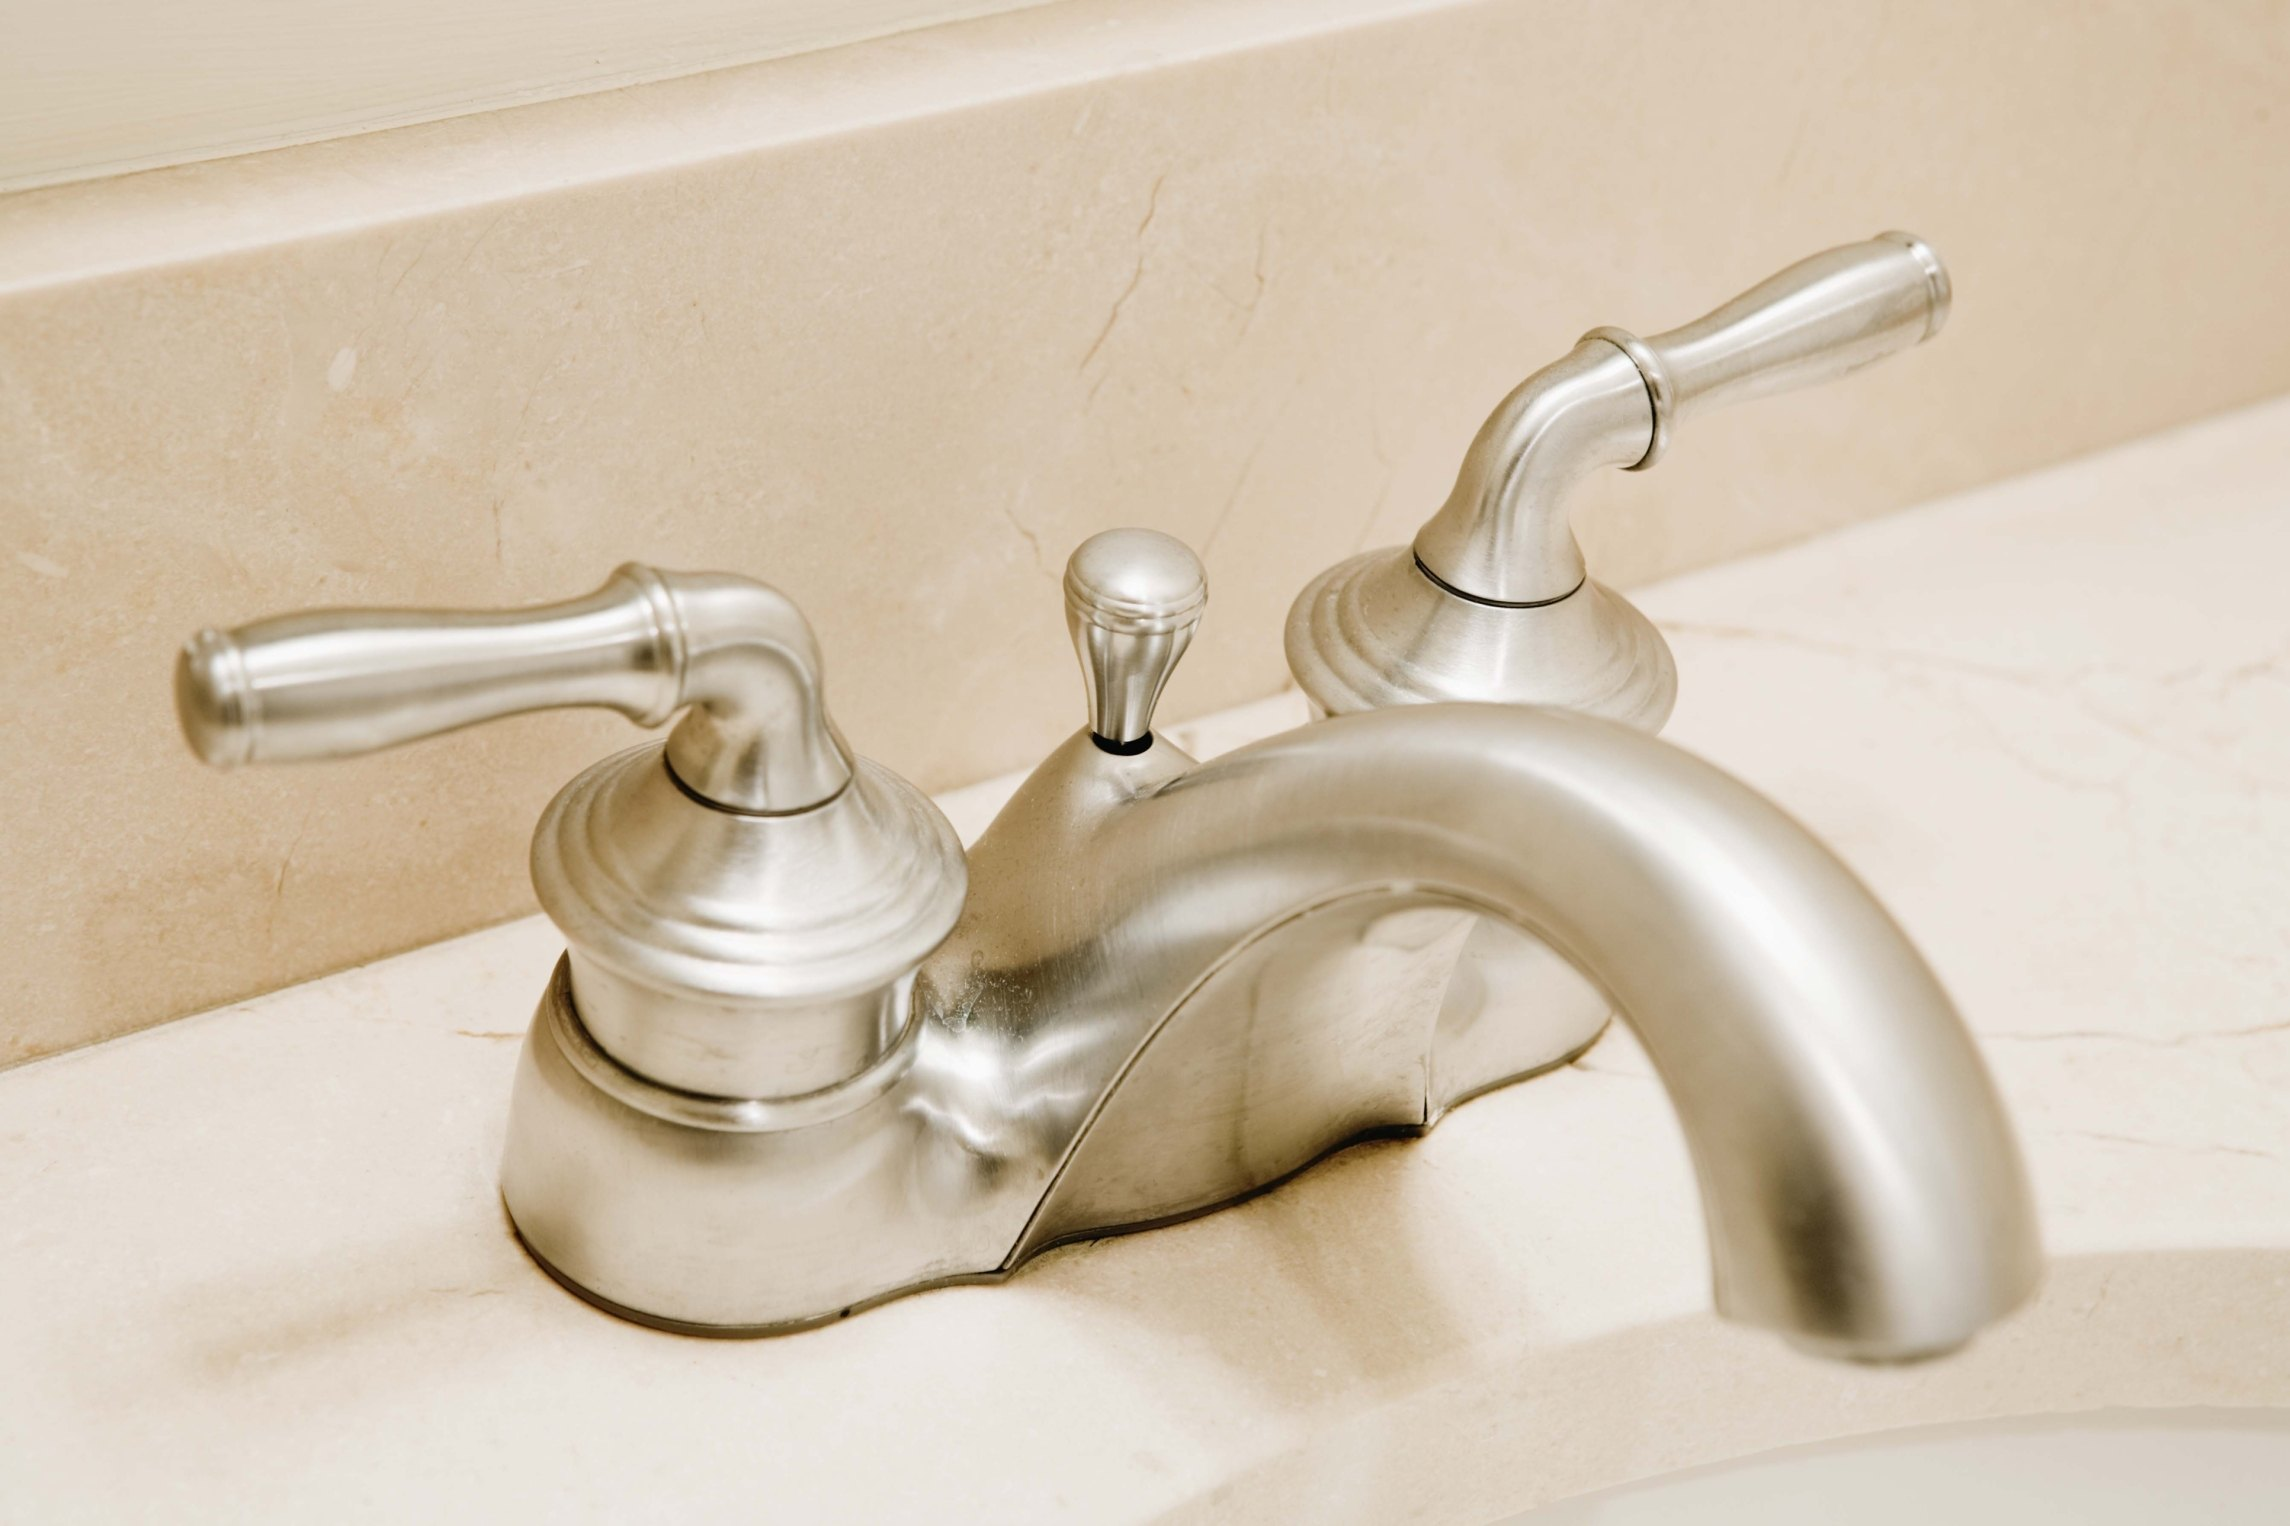 How to Repair a Leaky Stem Faucet on a Bathroom Sink | eHow